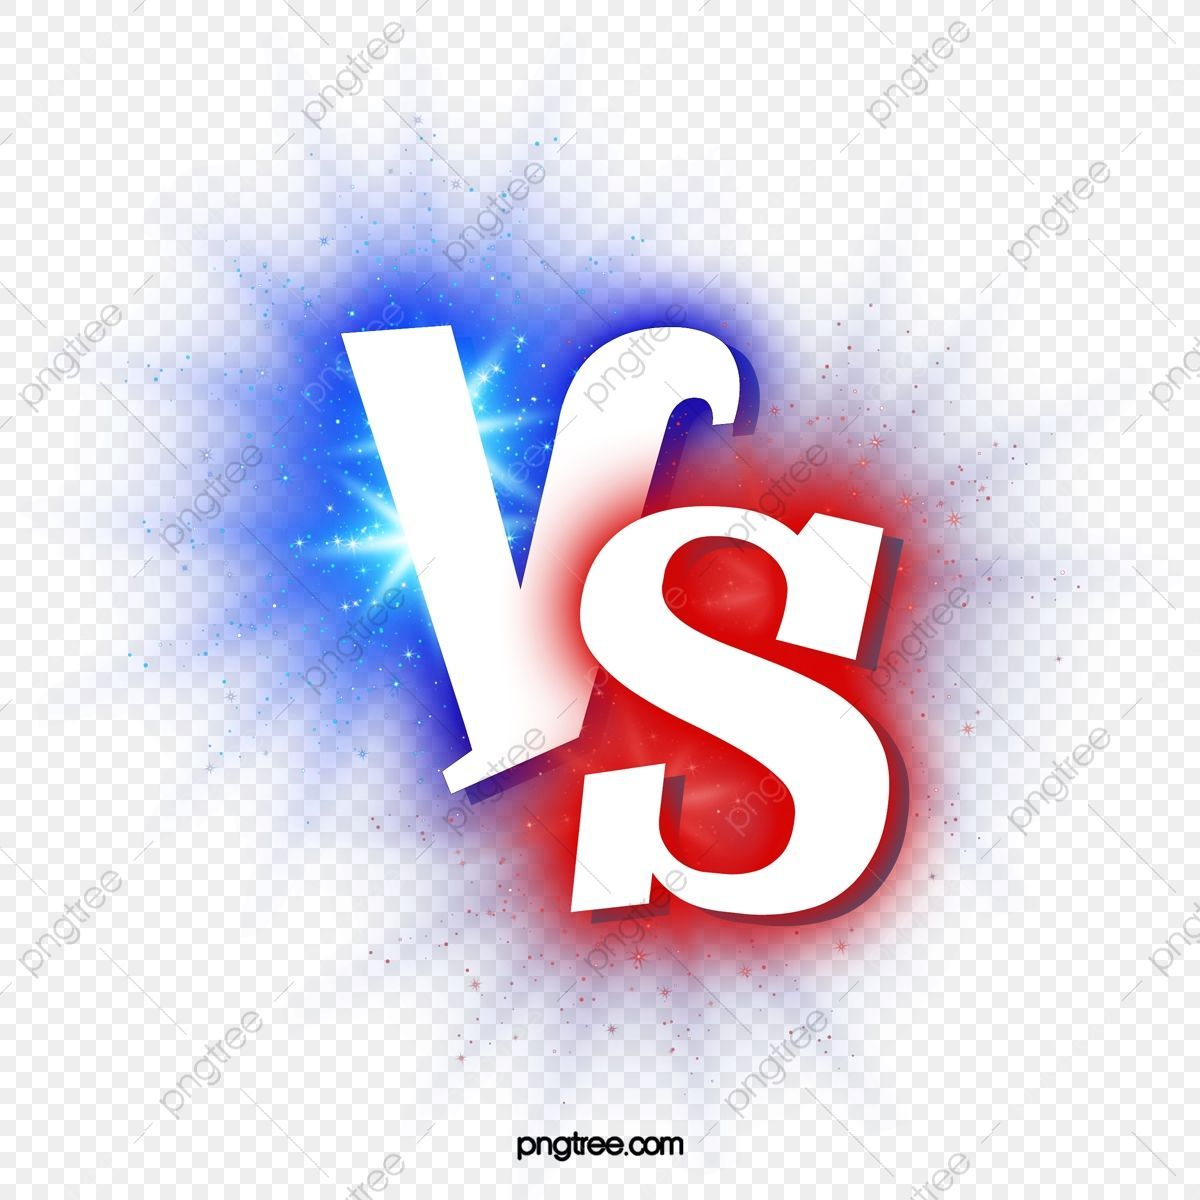 Special Effects Creative Vs Elements Duel Pk Luminescence Png Transparent Clipart Image And Psd File For Free Download In 2020 Clip Art Clipart Images Creative